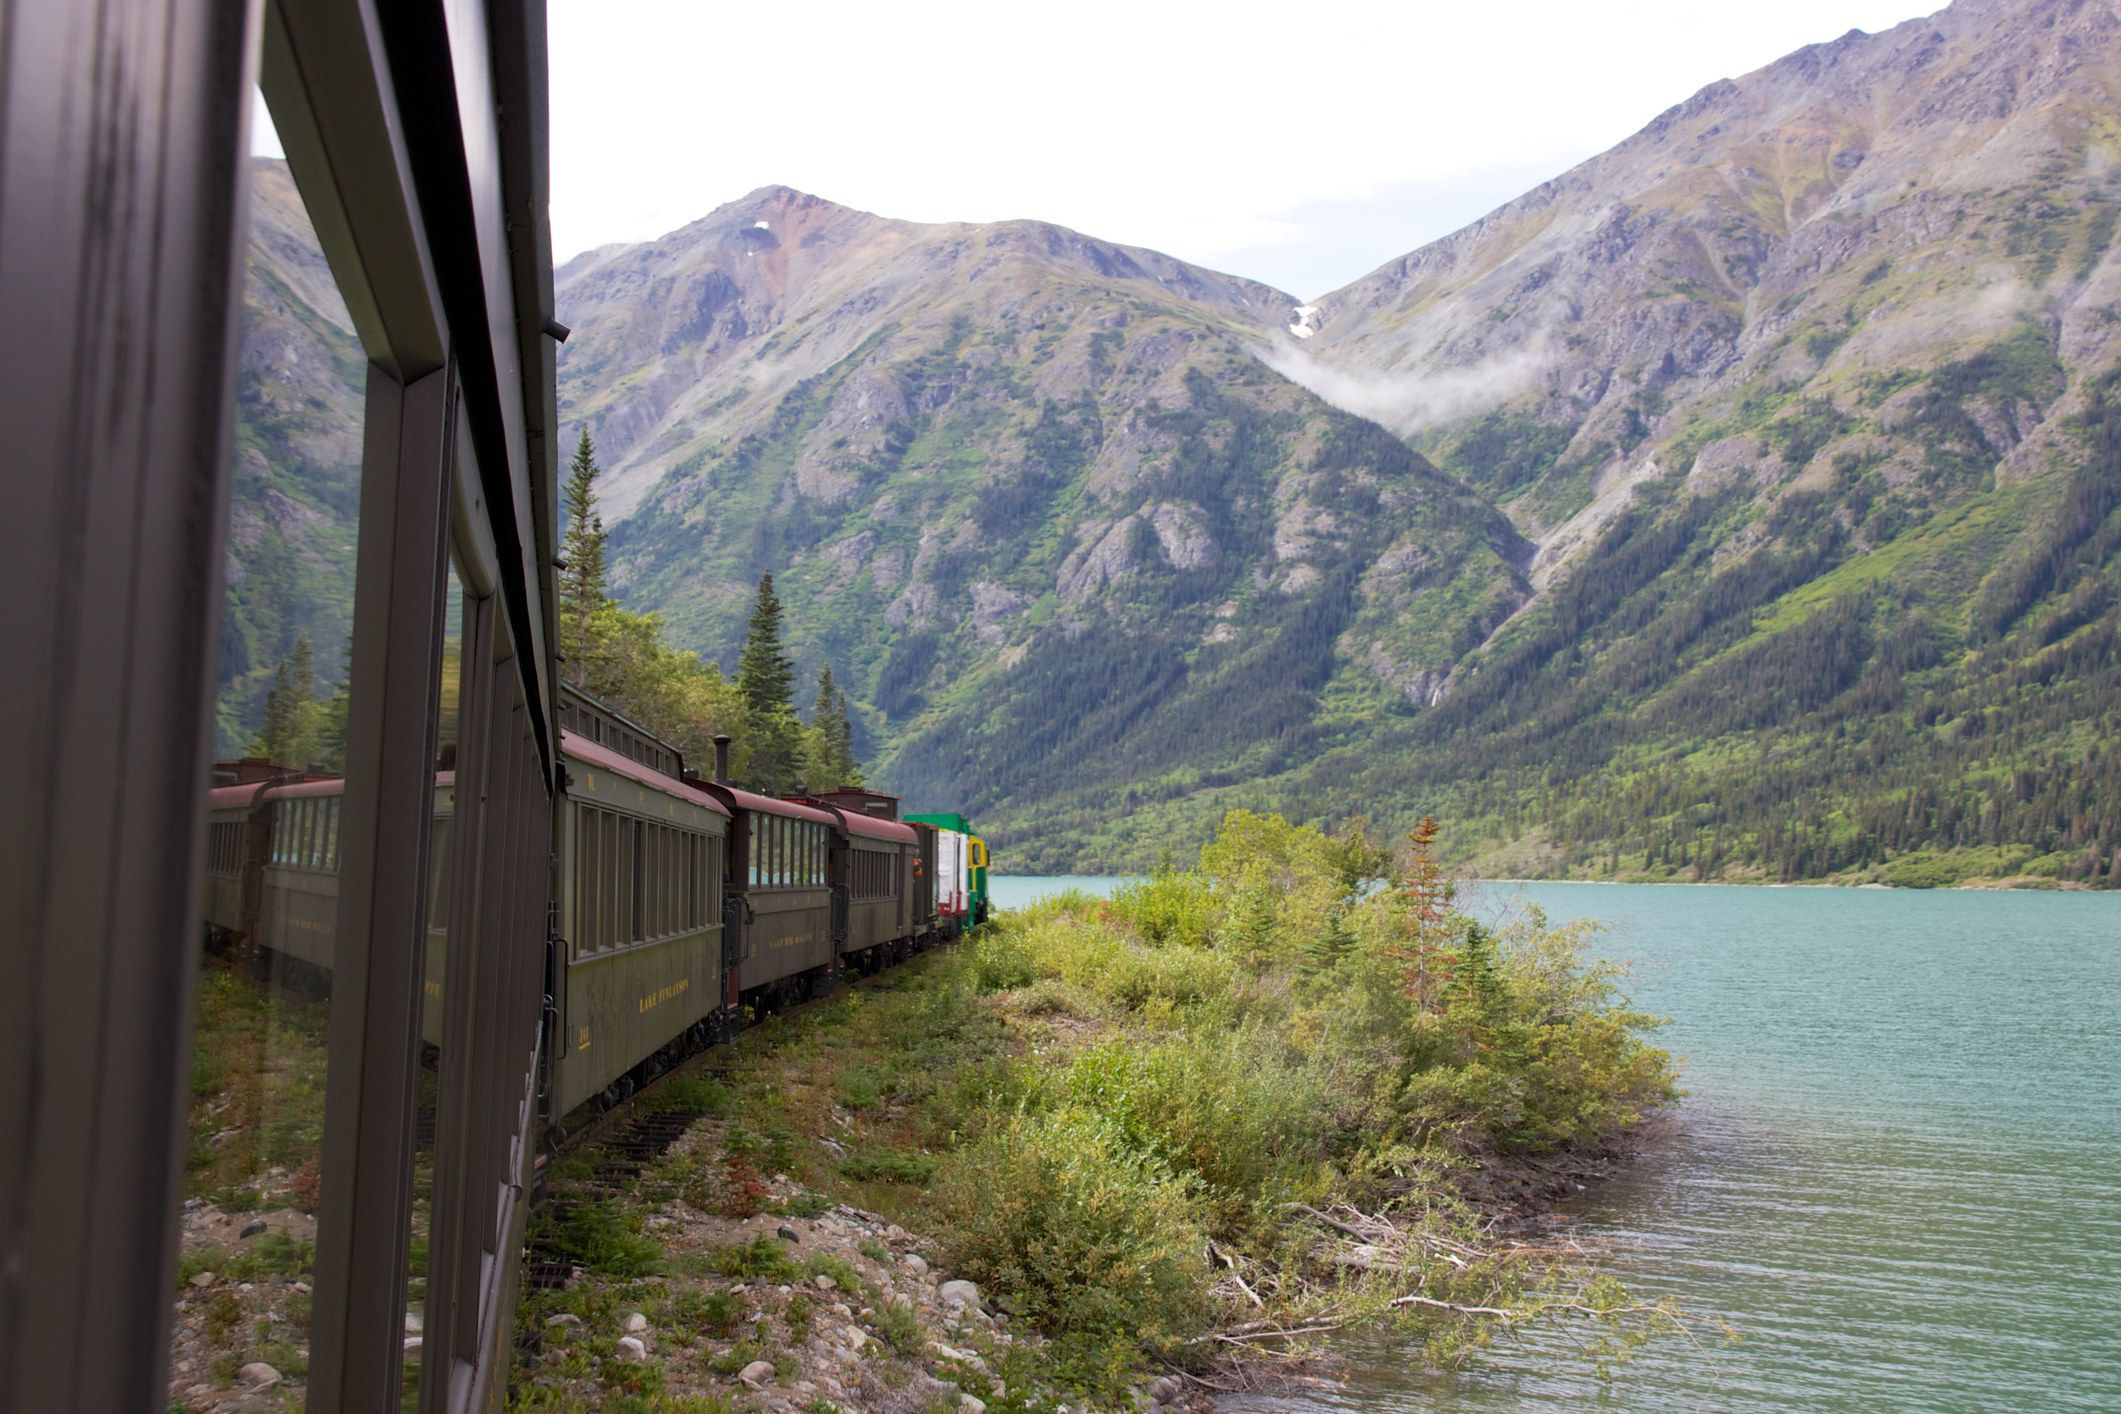 15 Of The Most Amazing Train Trips You Can Take In The USA